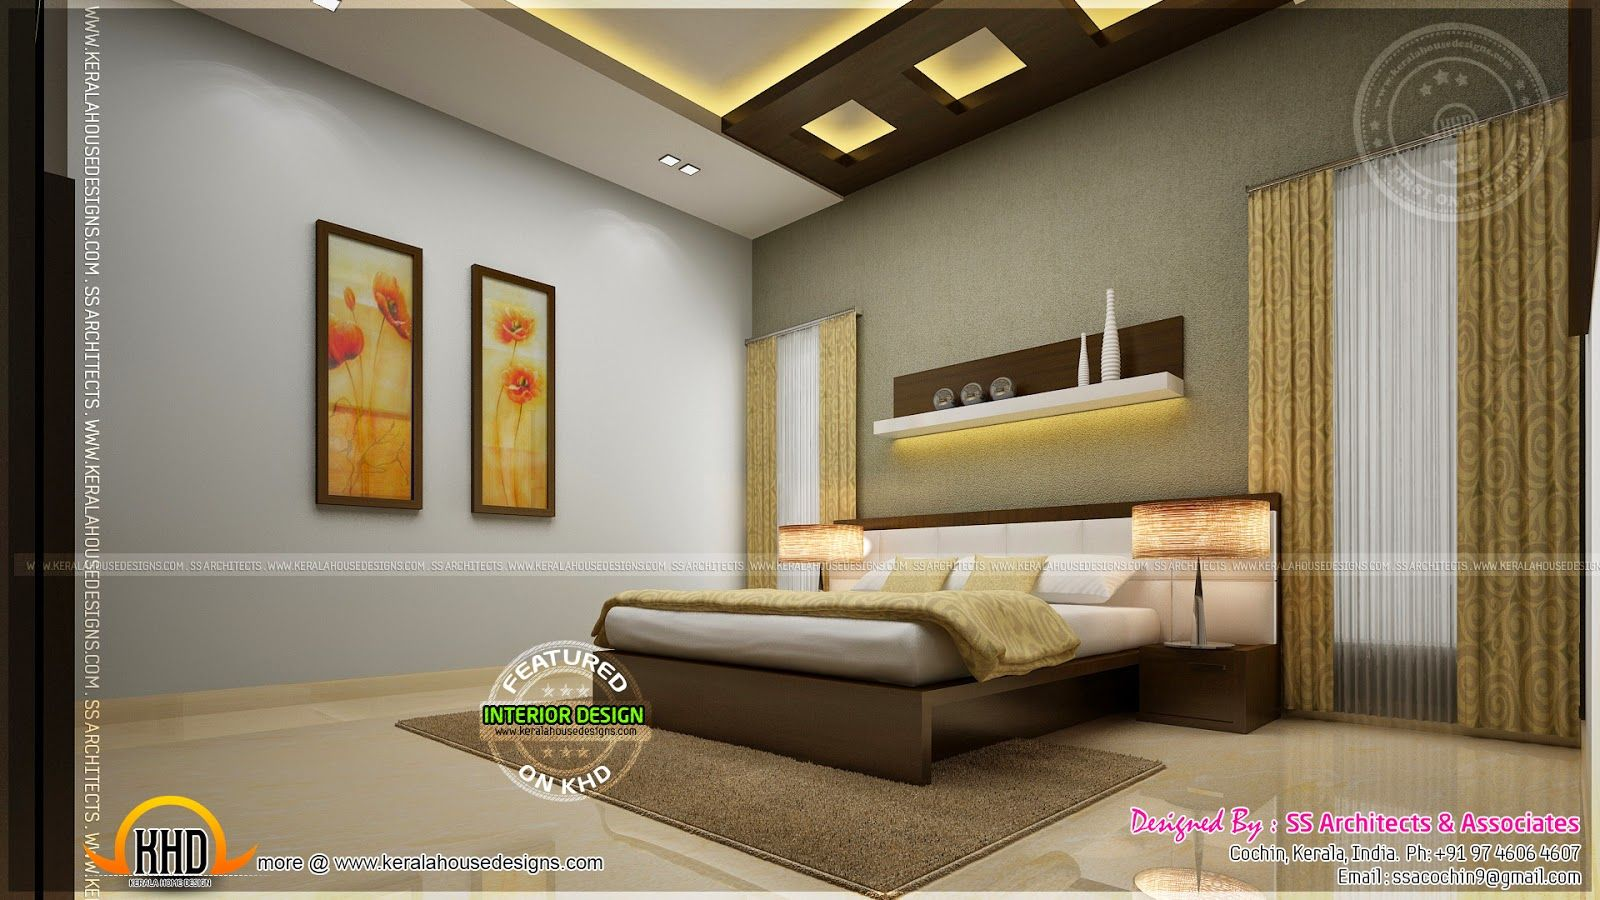 Indian Master Bedroom Interior Design Google Search Master Bedroom Interior Design Interior Design Bedroom Master Bedroom Interior